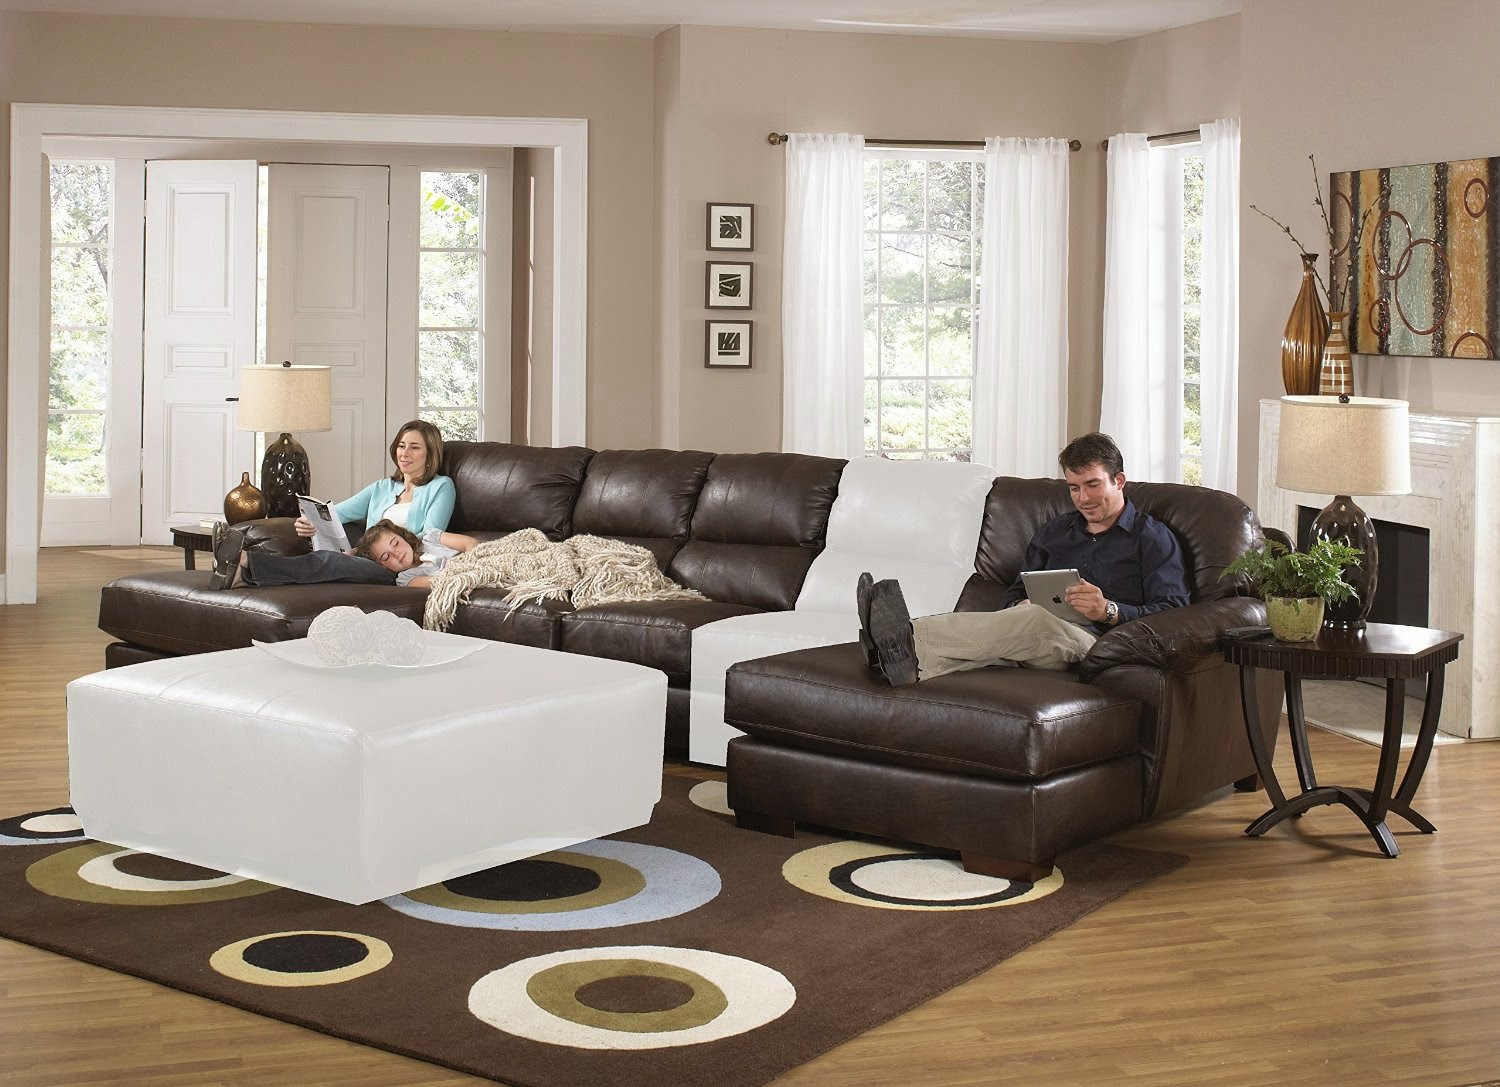 The Best Sectional Sleeper Sofa Reviews: Leather Sectional Sleeper Sofa  With Chaise